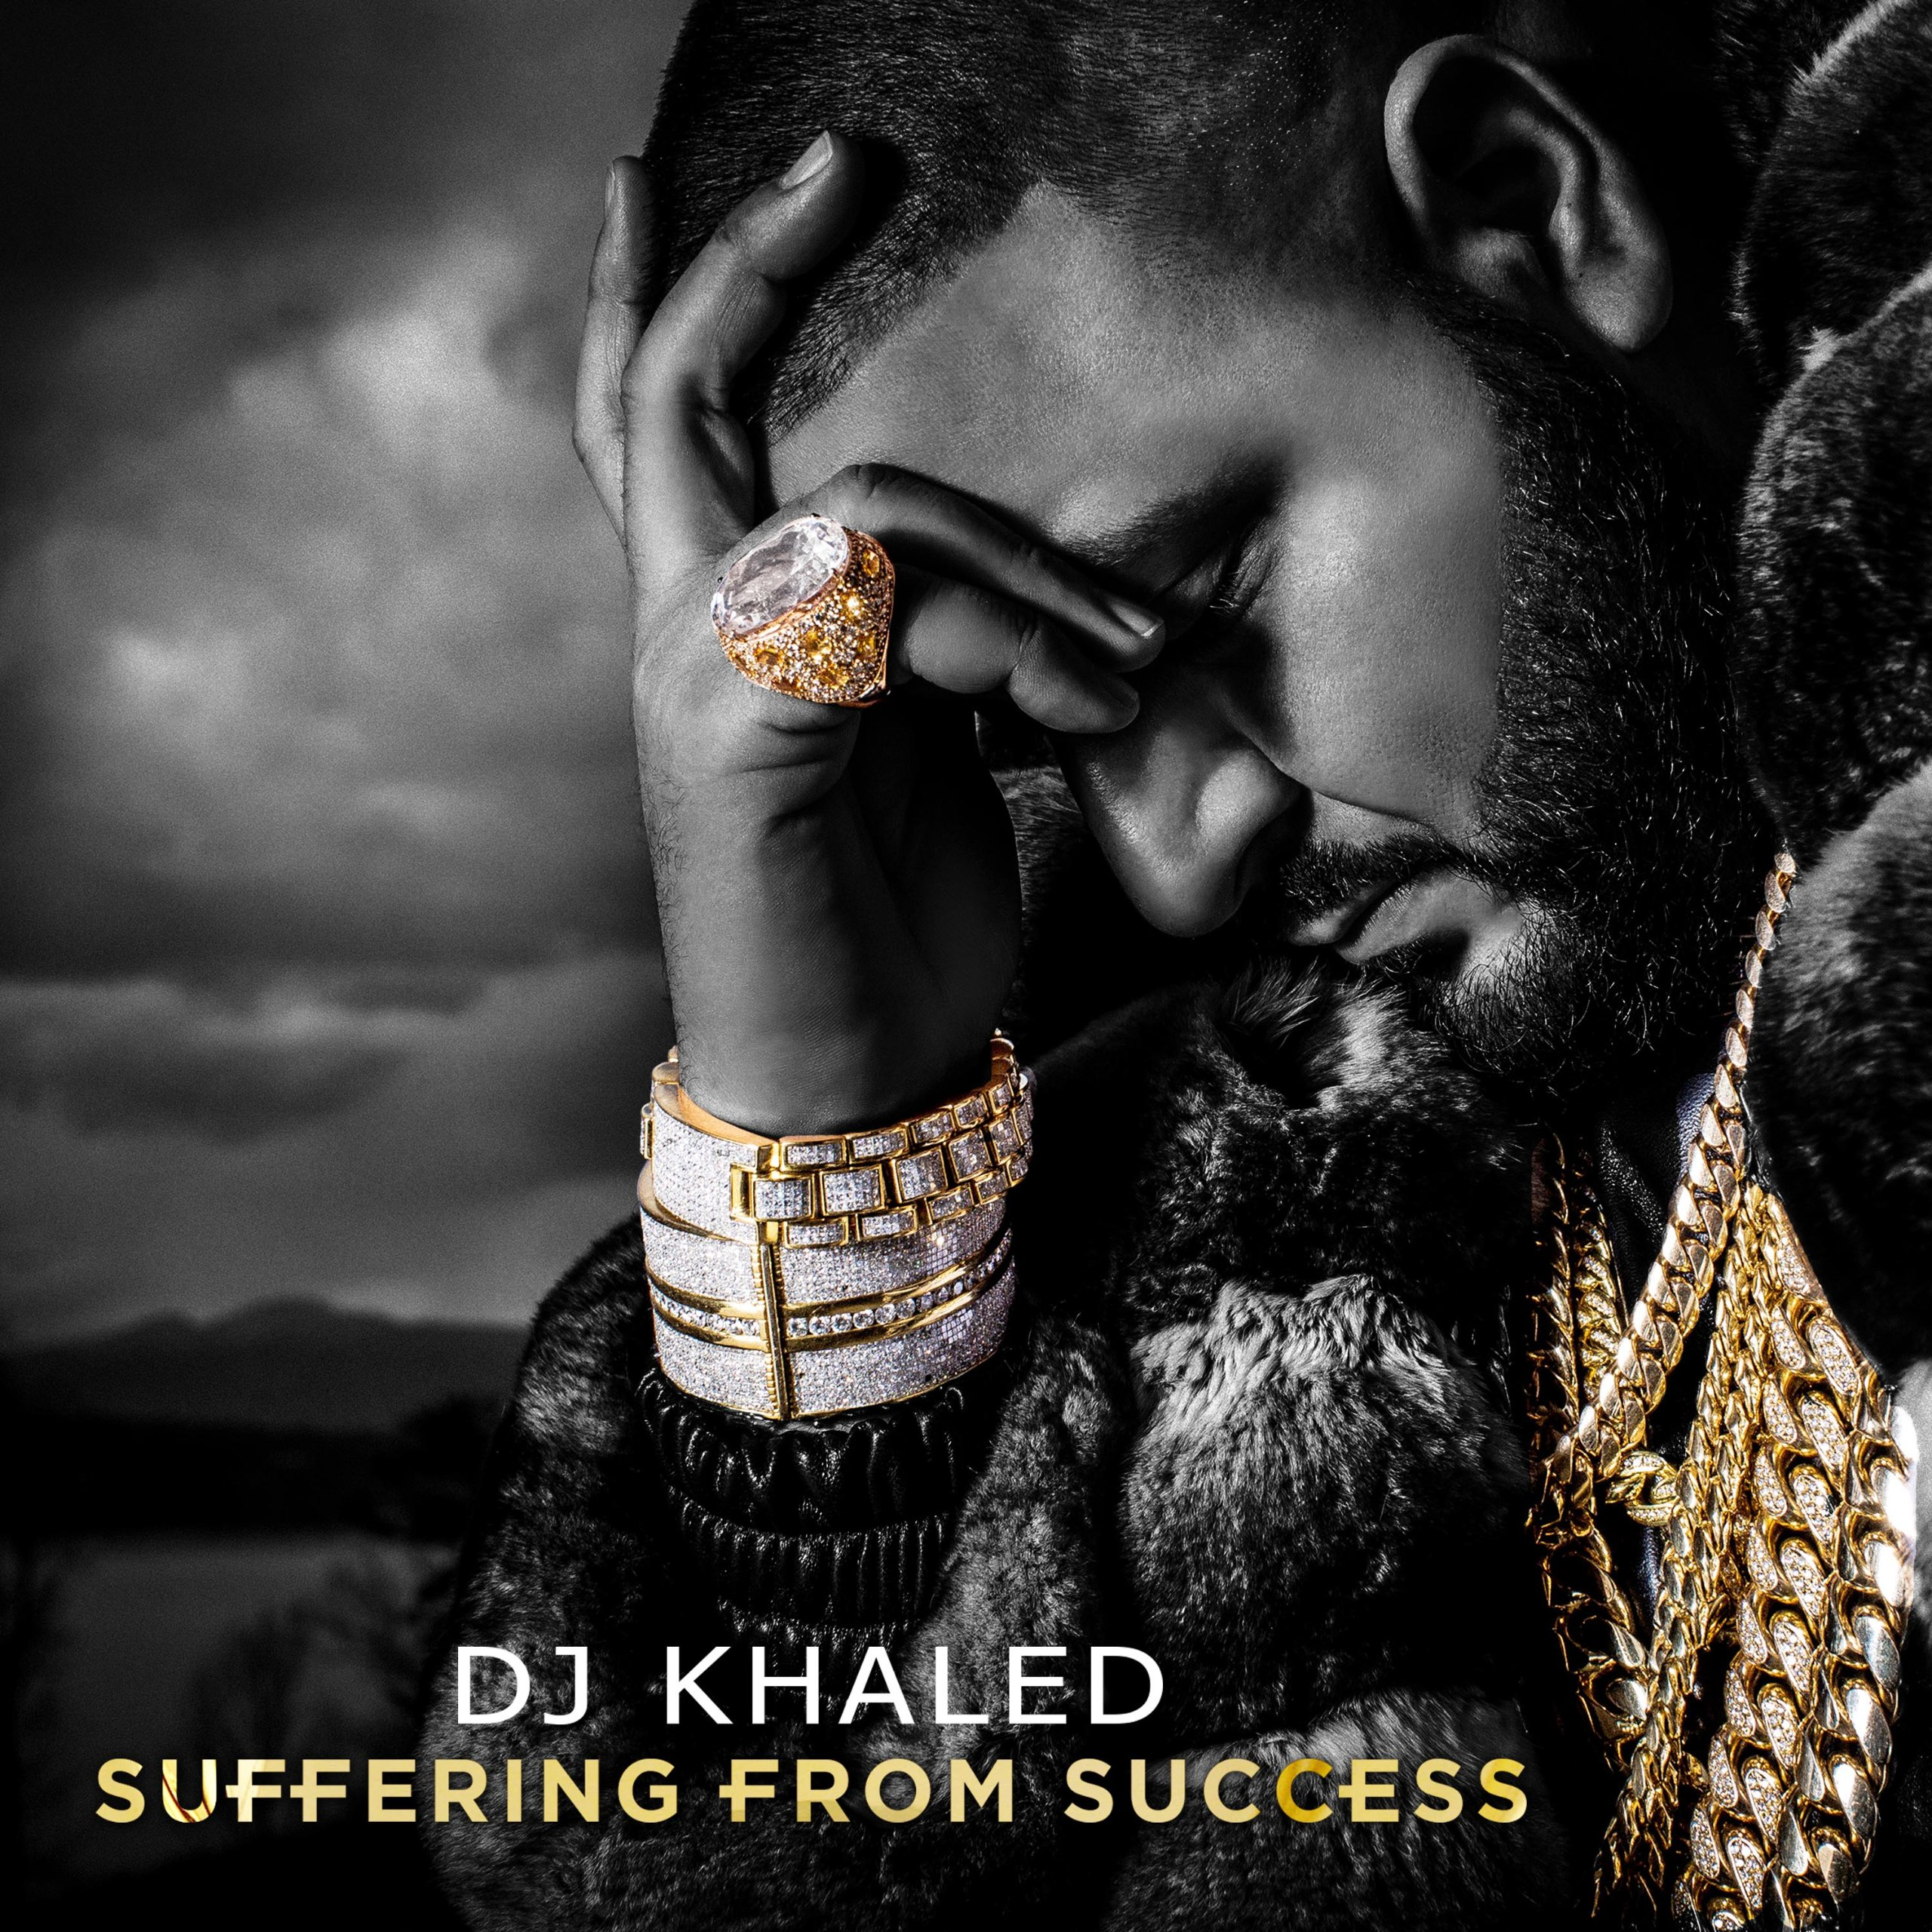 CD : DJ Khaled - Suffering From Success (Clean Version, Deluxe Edition)